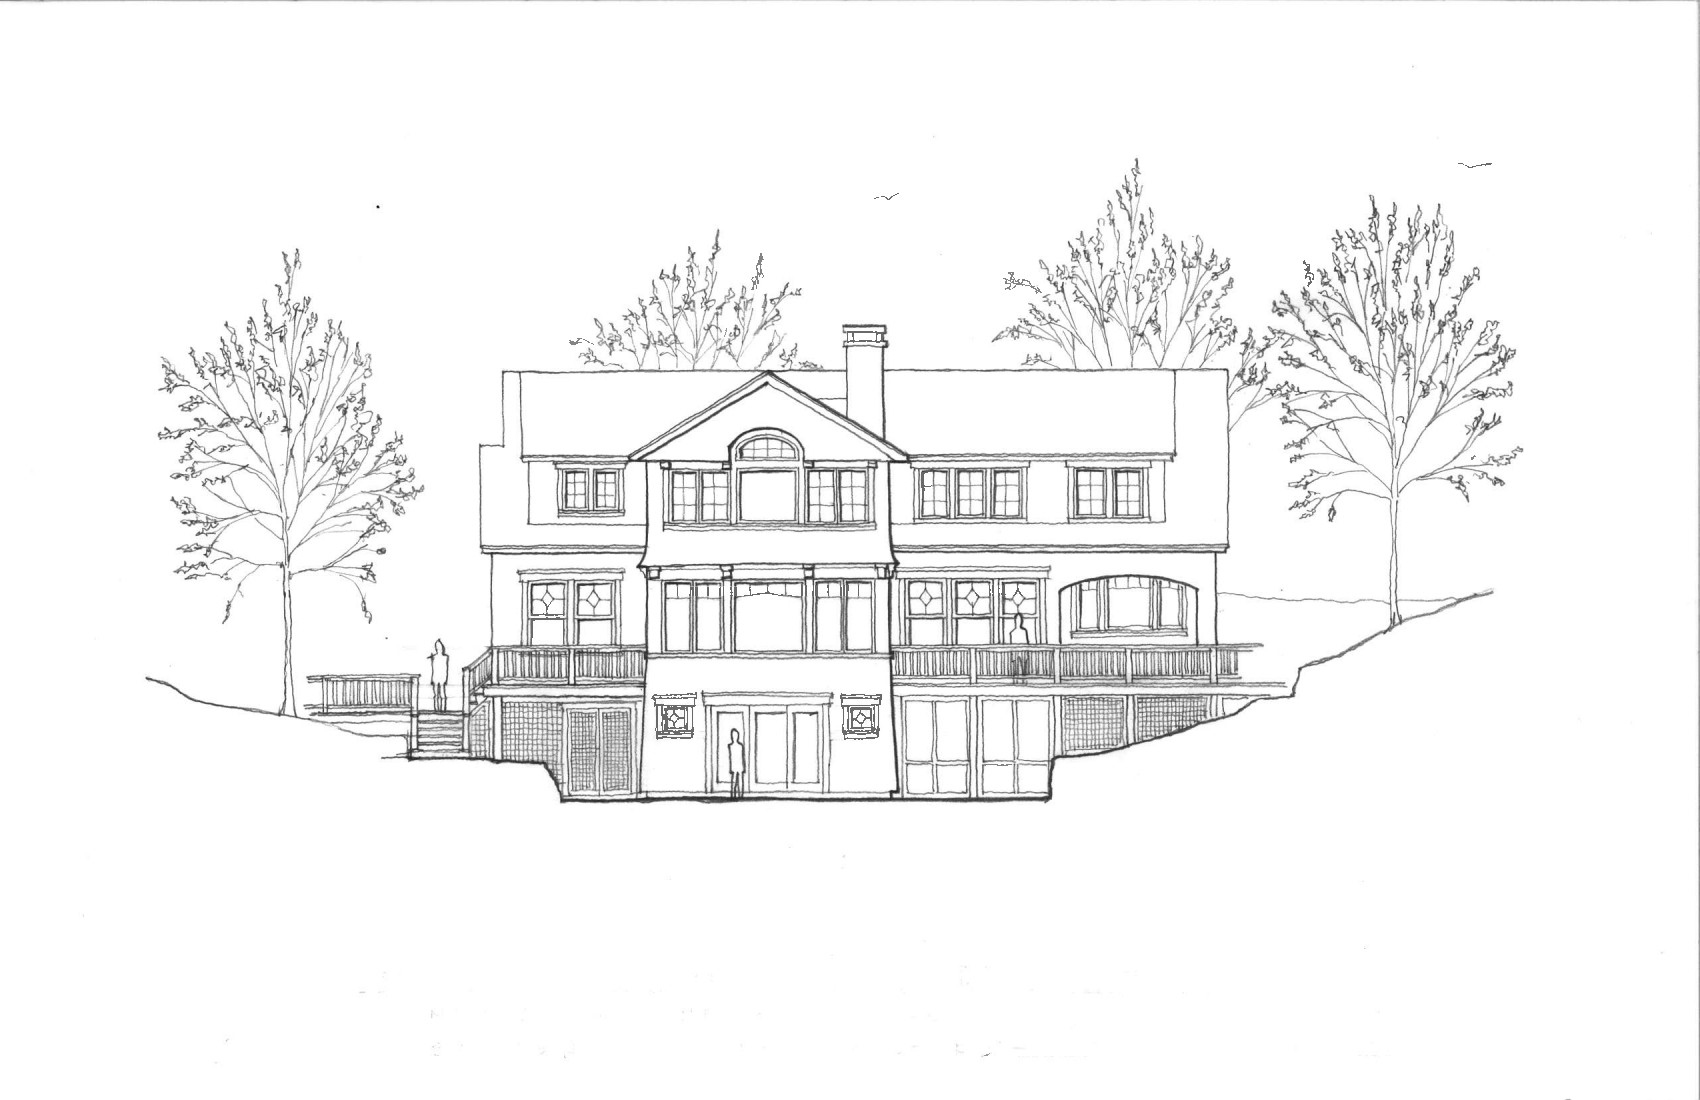 Design Sketch by Kennebunk River Architects - Residential and Commercial Architects